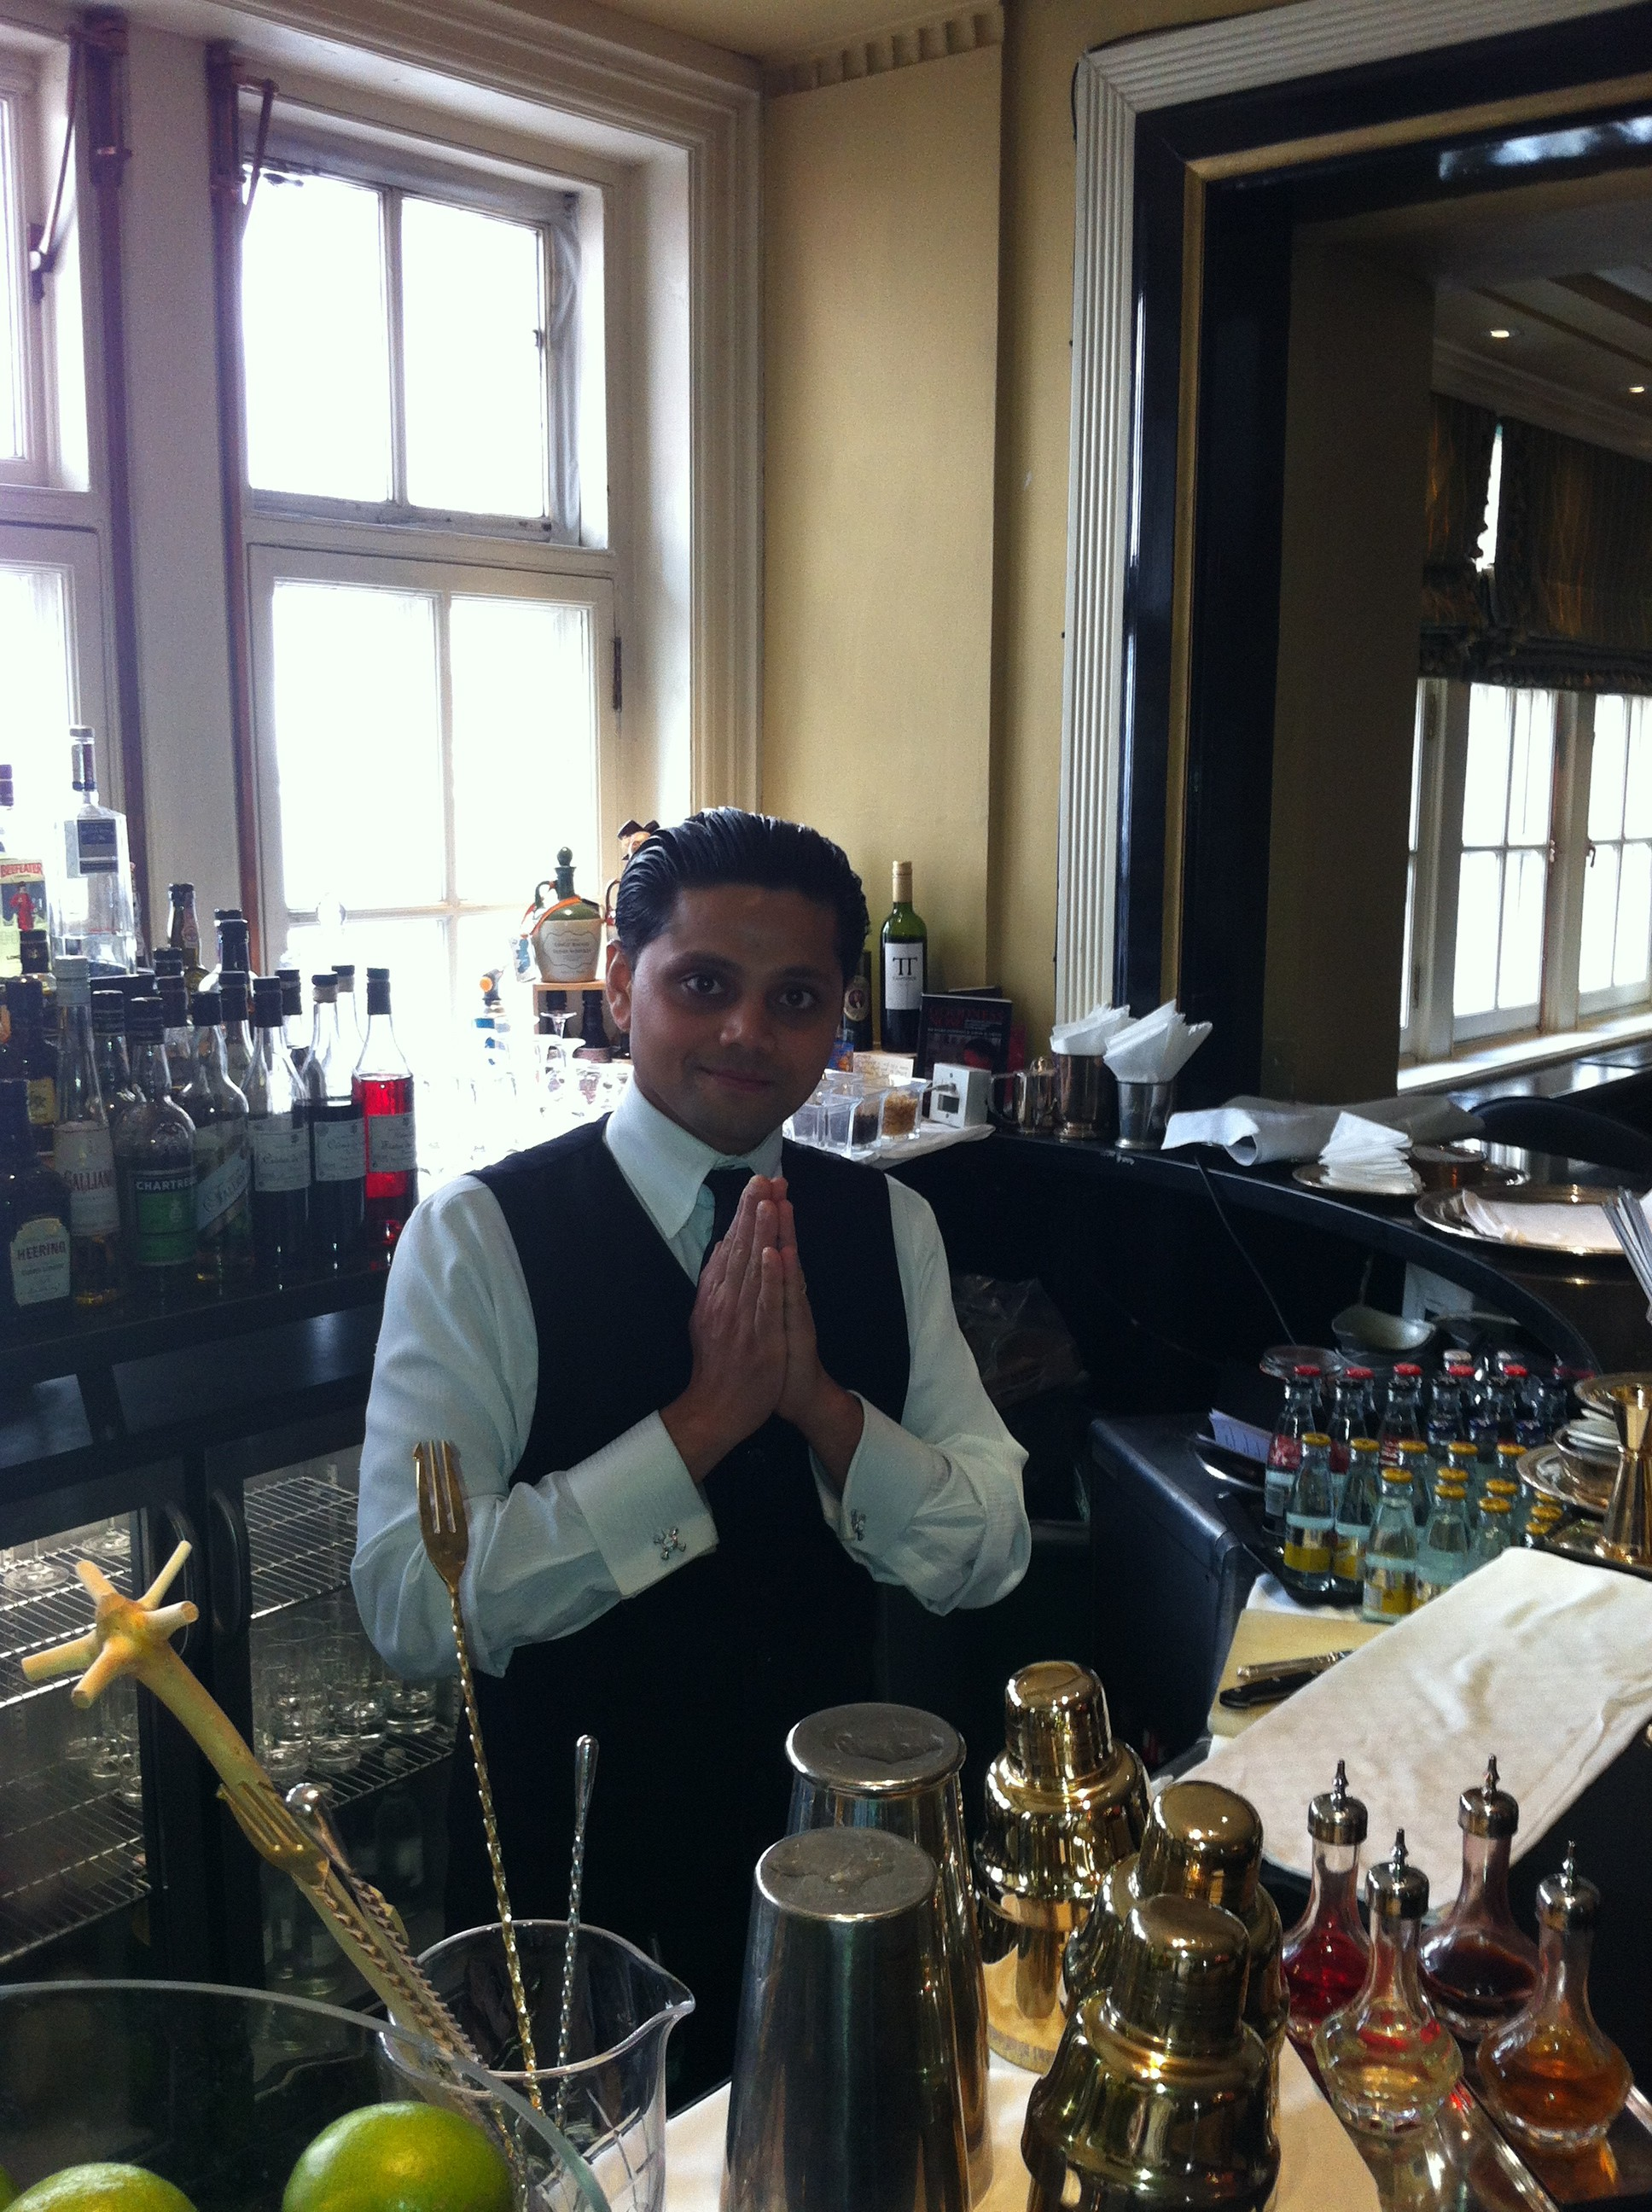 Swanand Korgaonkar, Head Bartender, Knight's Bar Simpson's-in-the-Strand